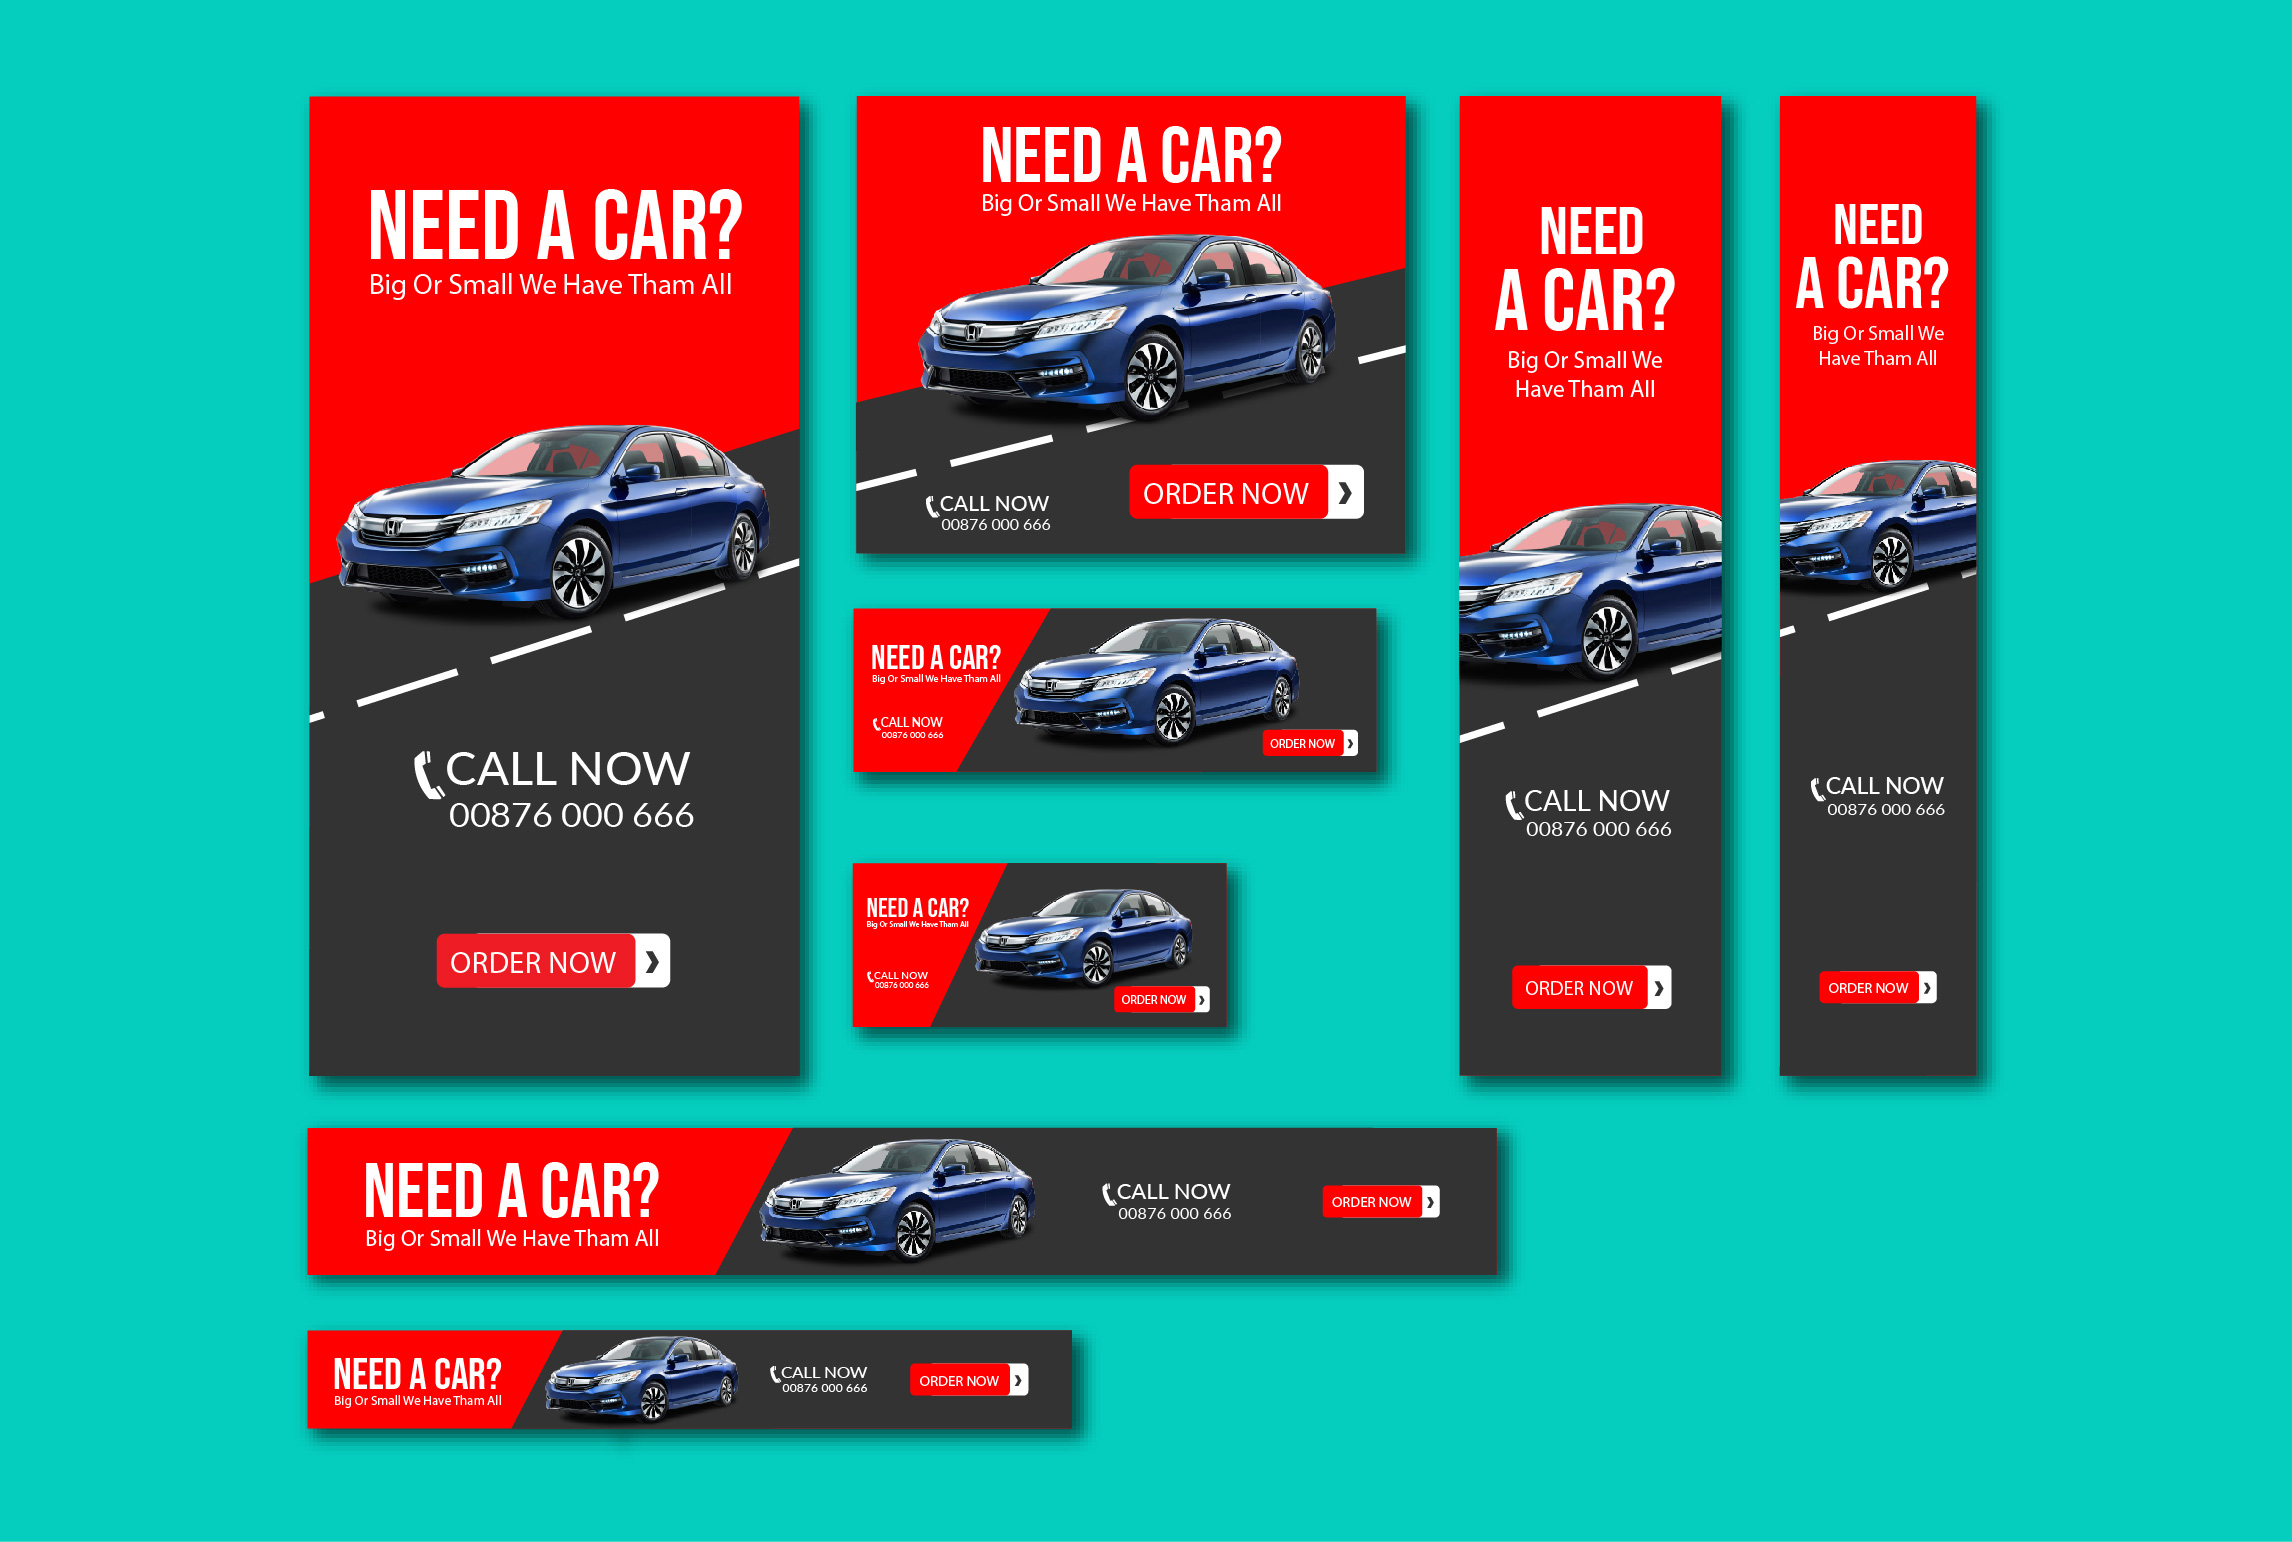 In 3 hours design HTML5 animated banner ads that get more sales